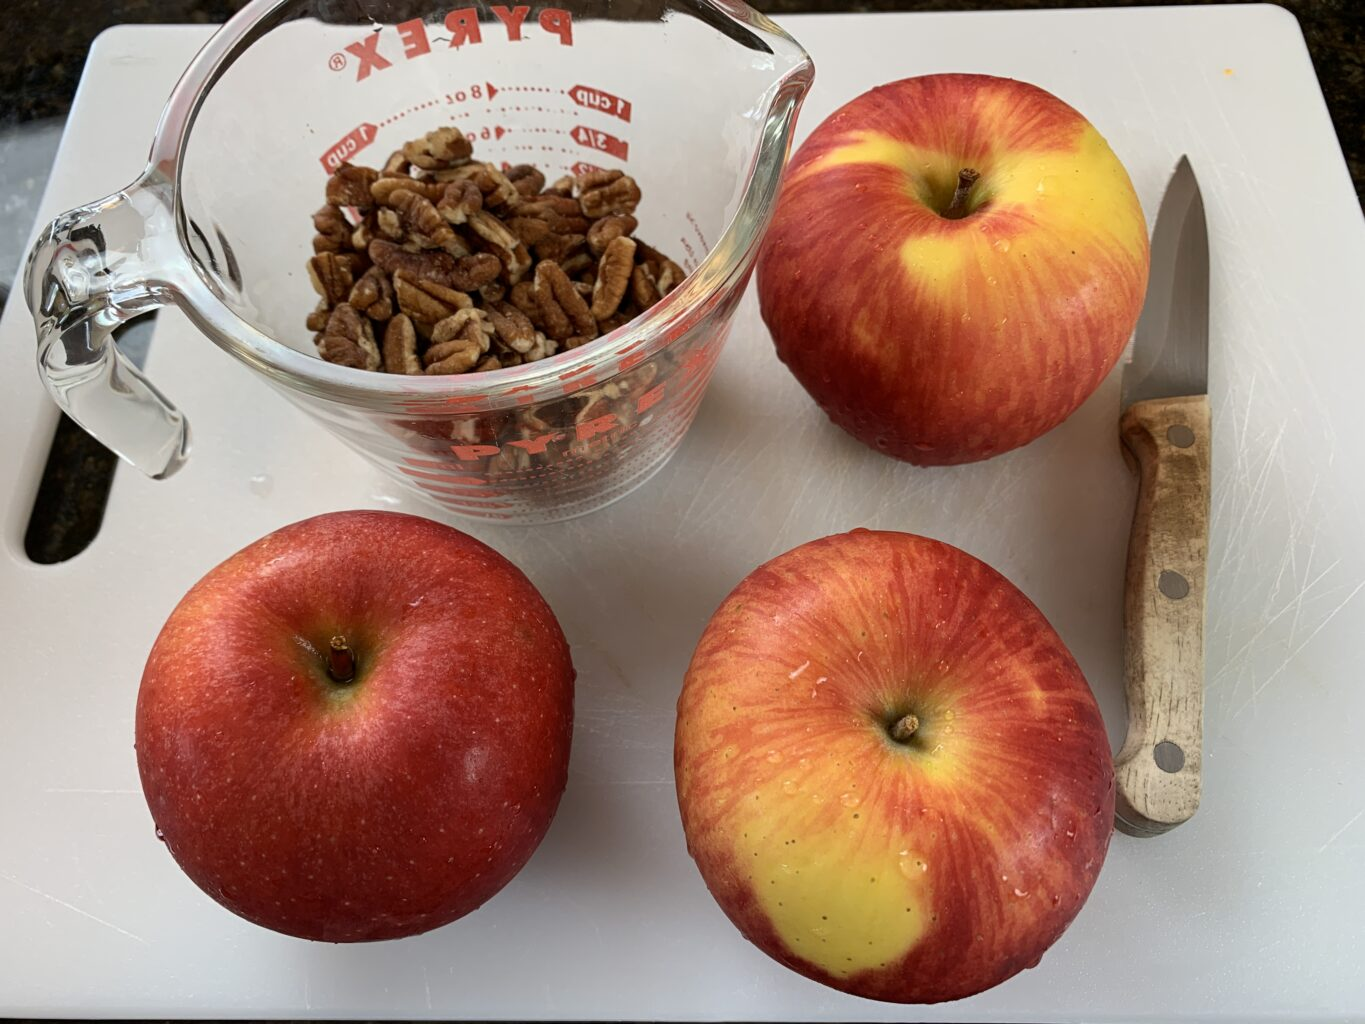 Apples, nuts and knife on cutting board